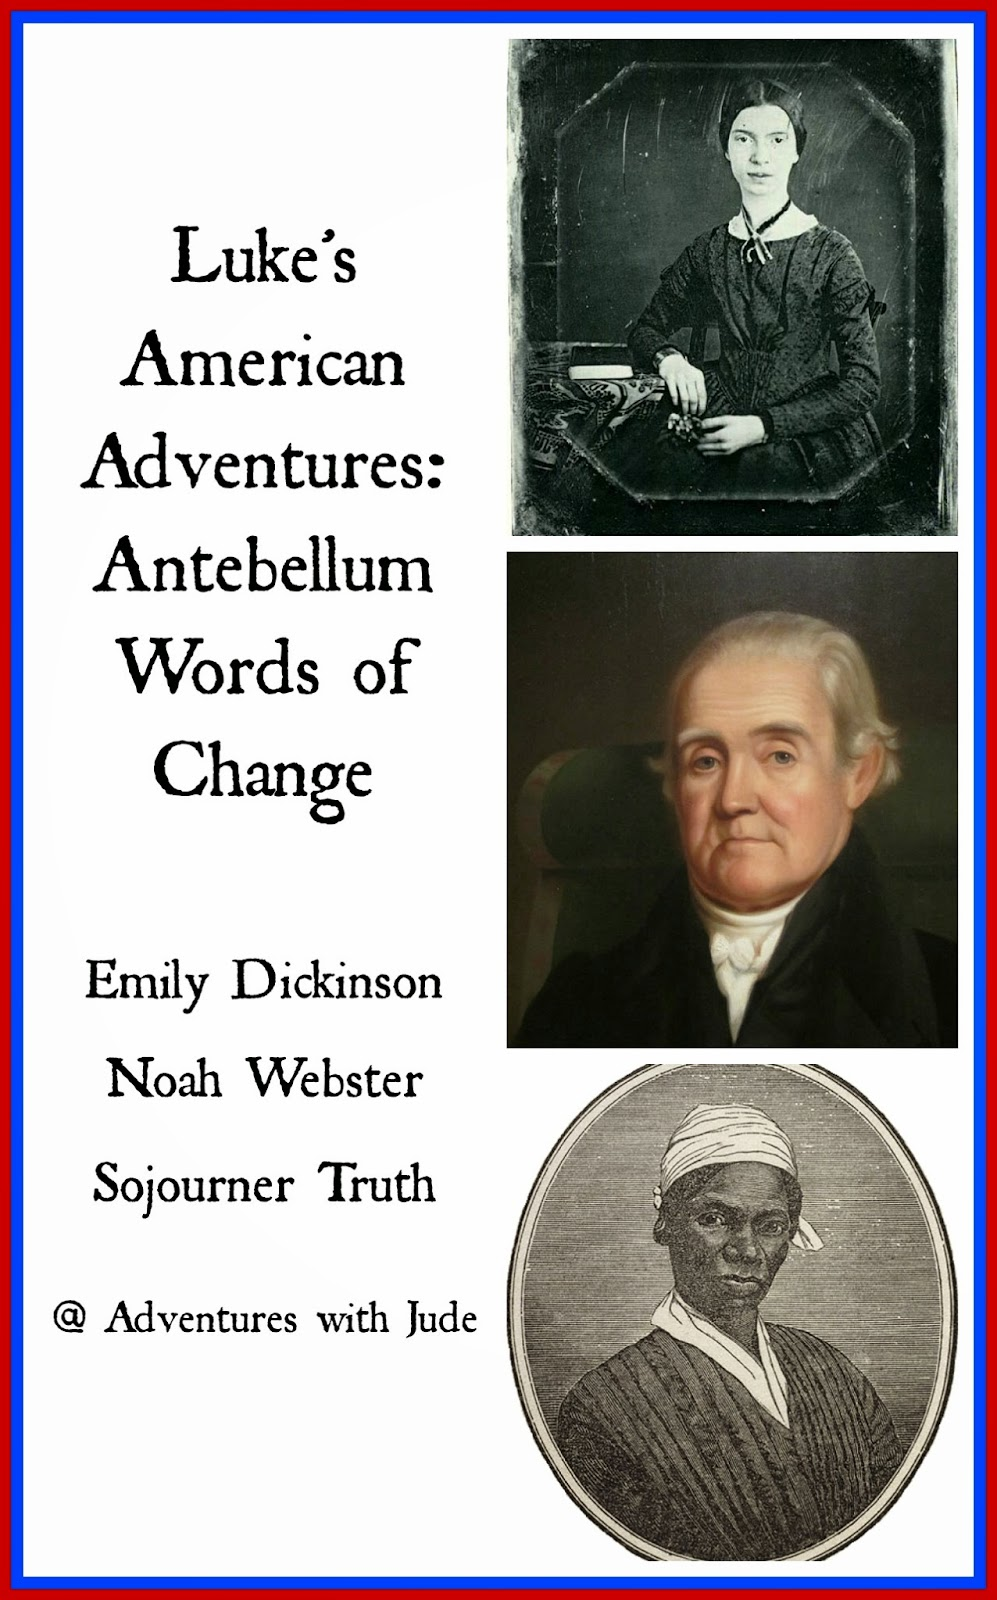 Luke's American Adventures: Antebellum Words of Change